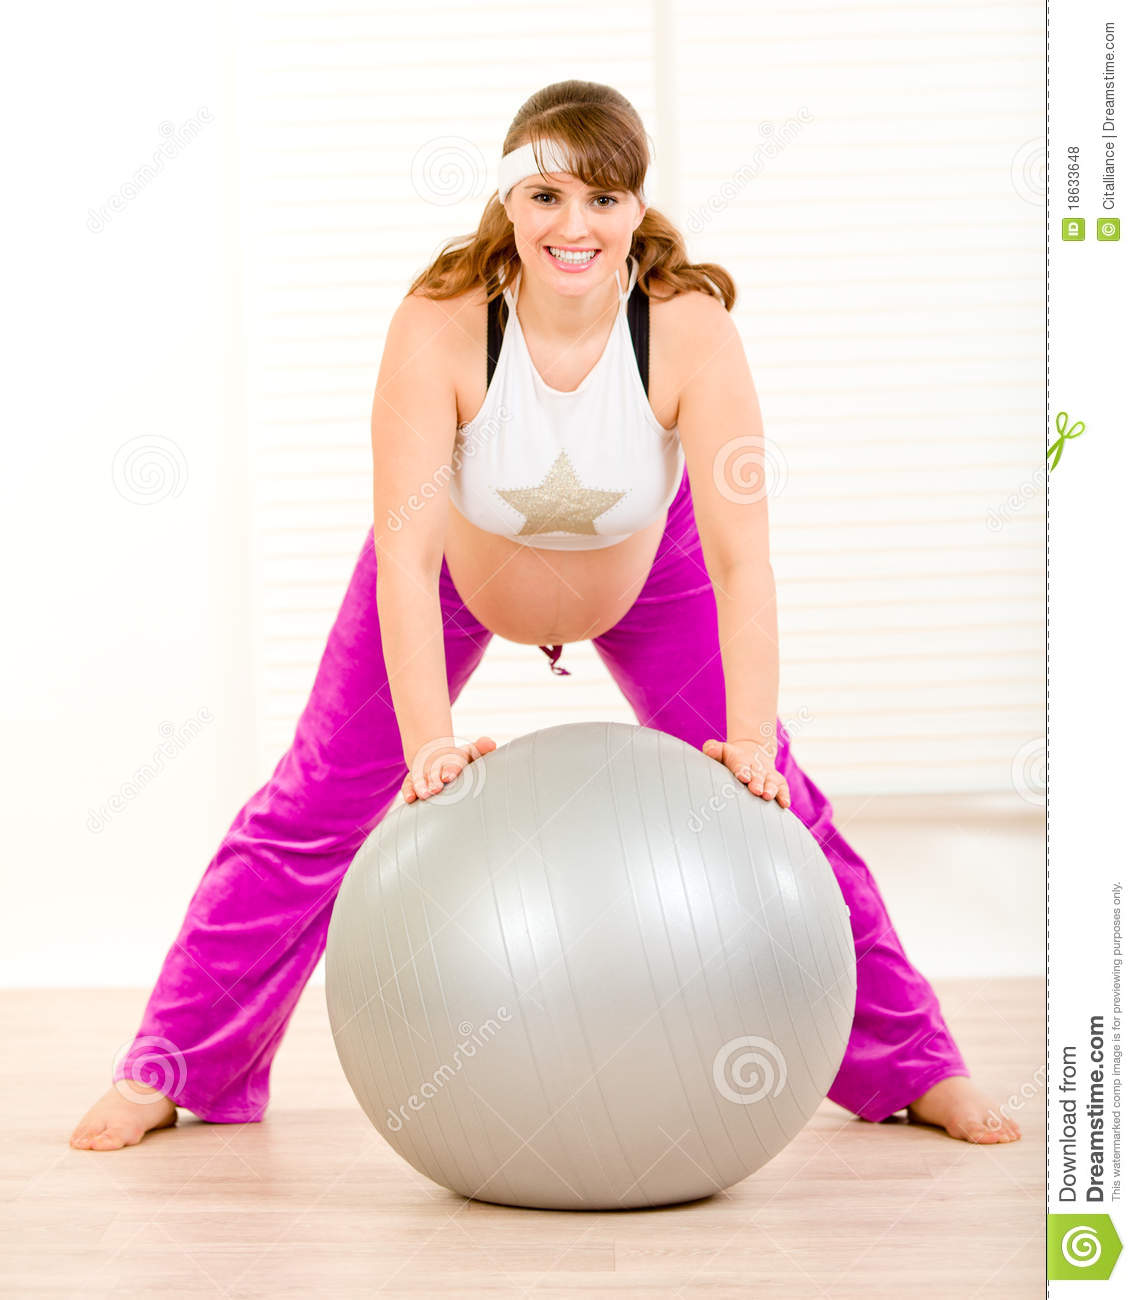 Balance Ball Exercises For Pregnancy: Pregnant Woman Doing Exercises On Fitness Ball Royalty